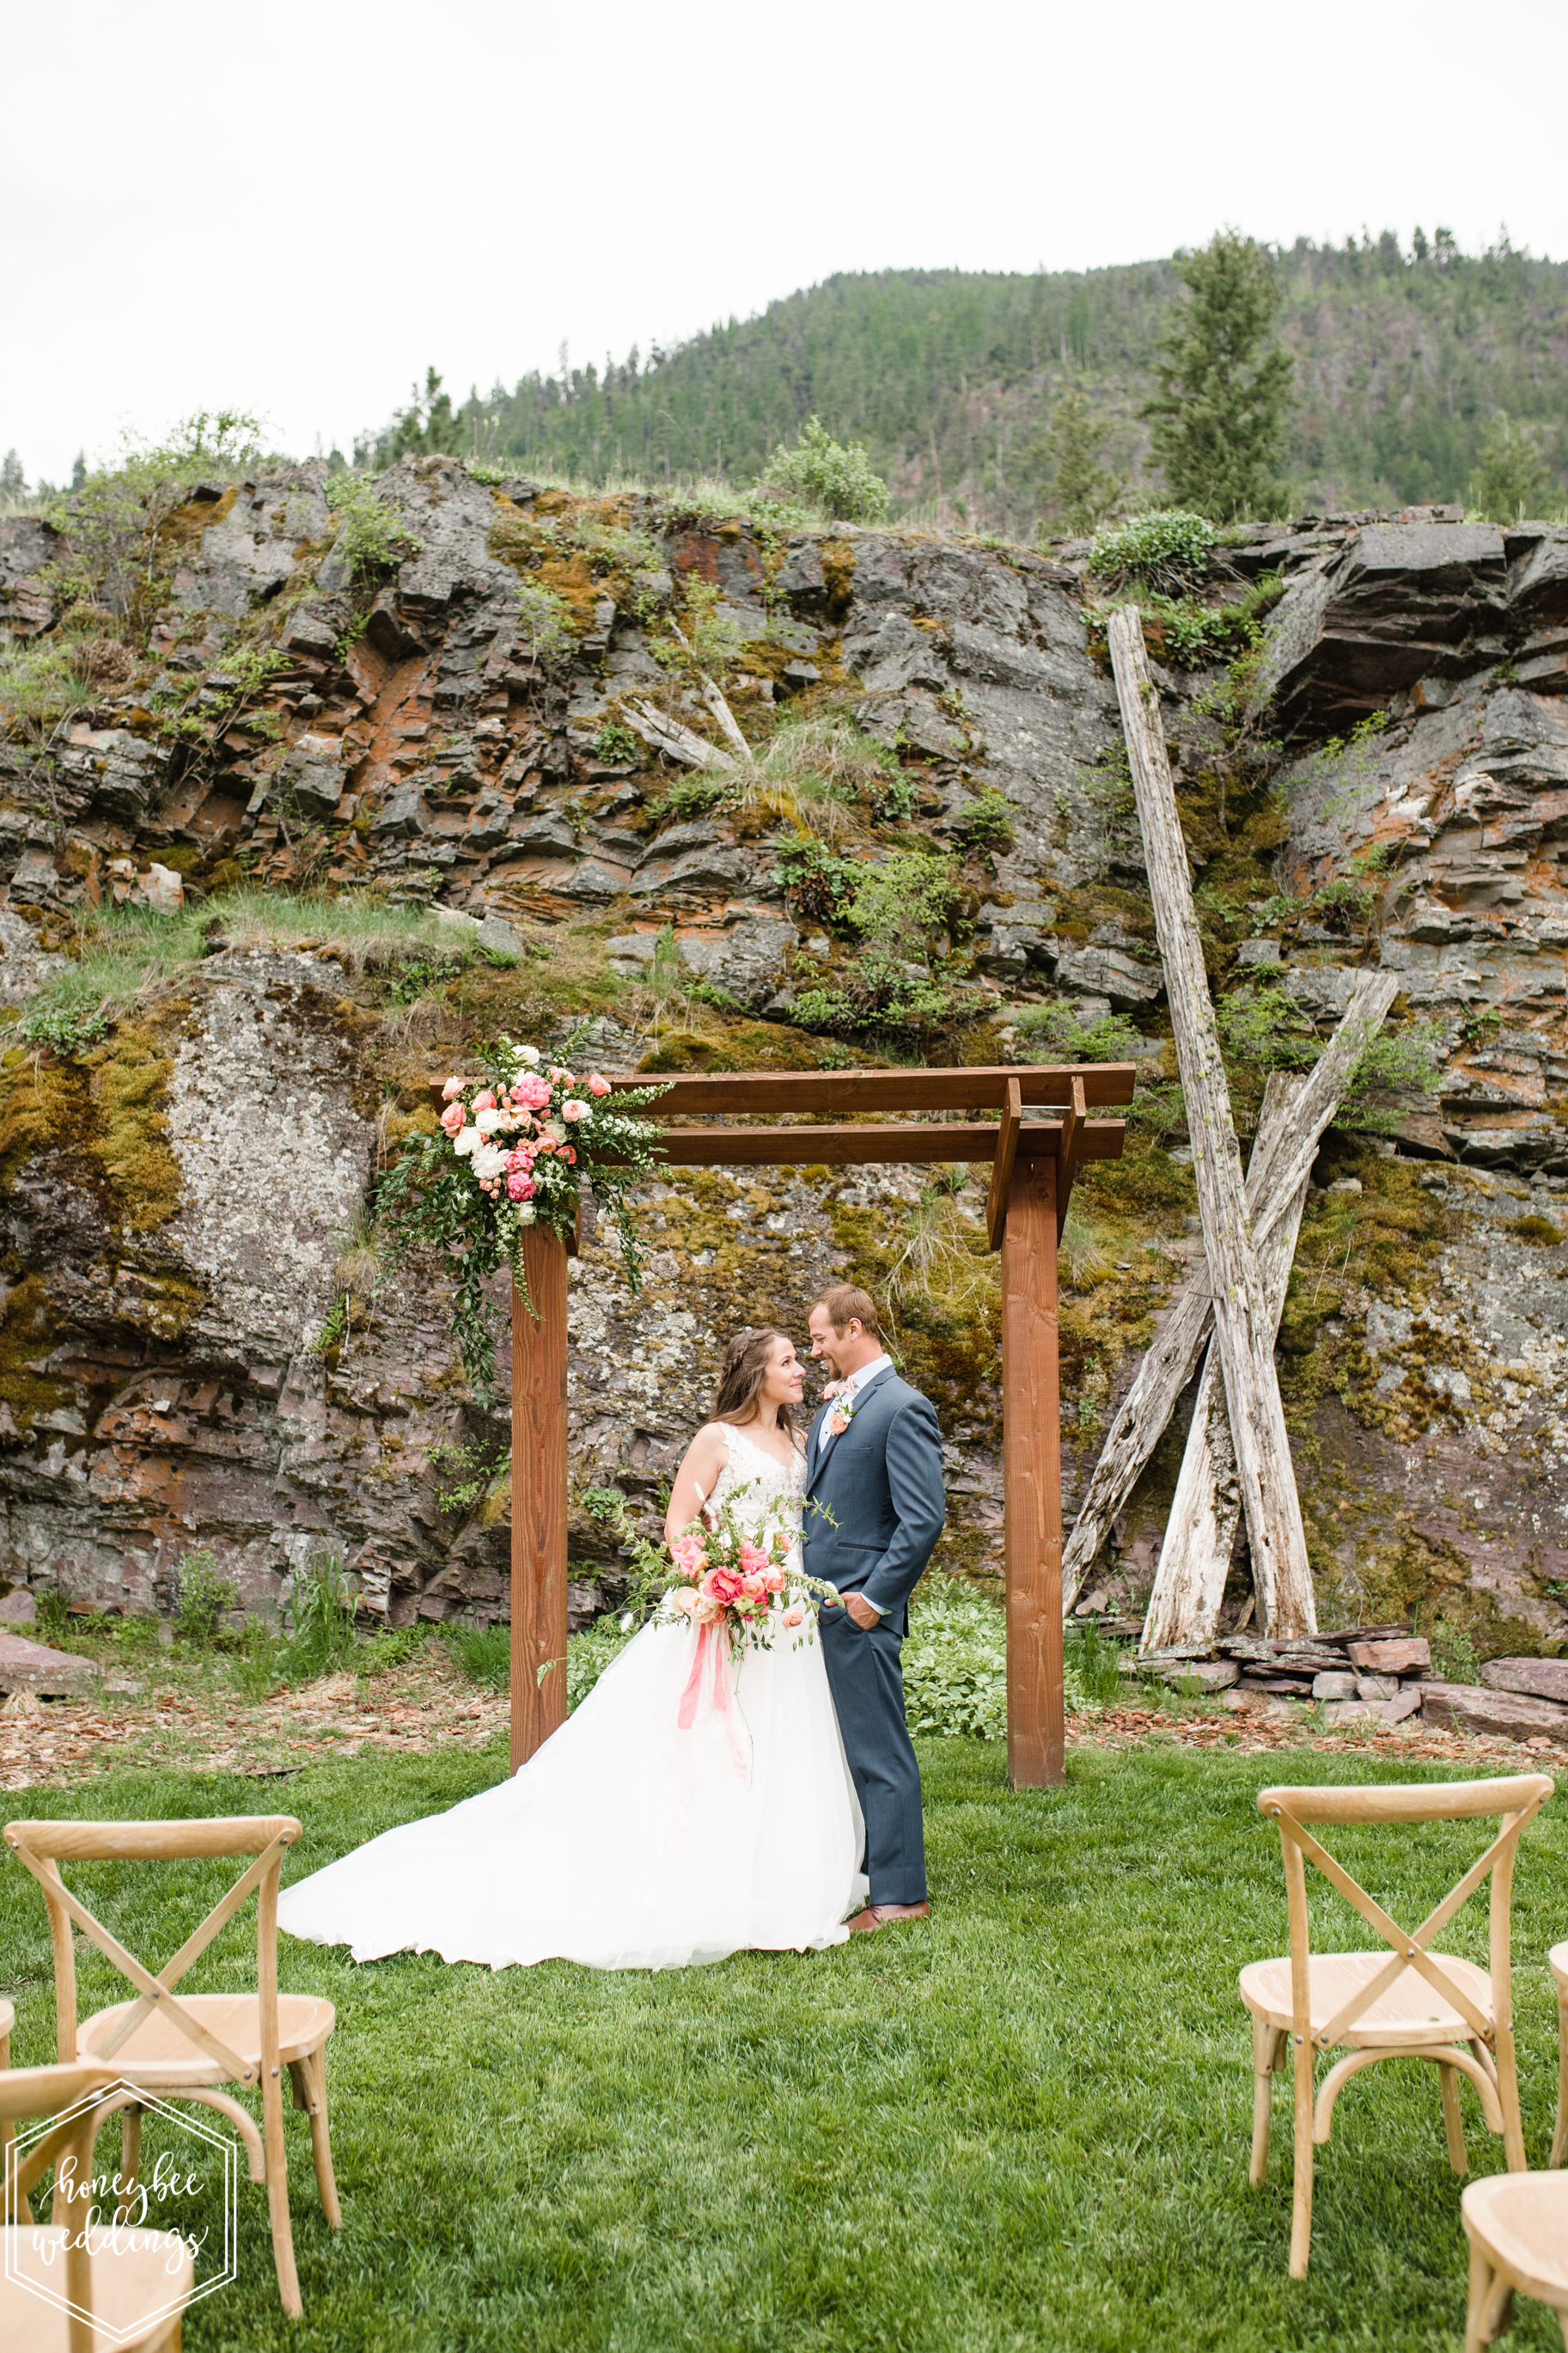 126Coral Mountain Wedding at White Raven_Honeybee Weddings_May 23, 2019-382.jpg